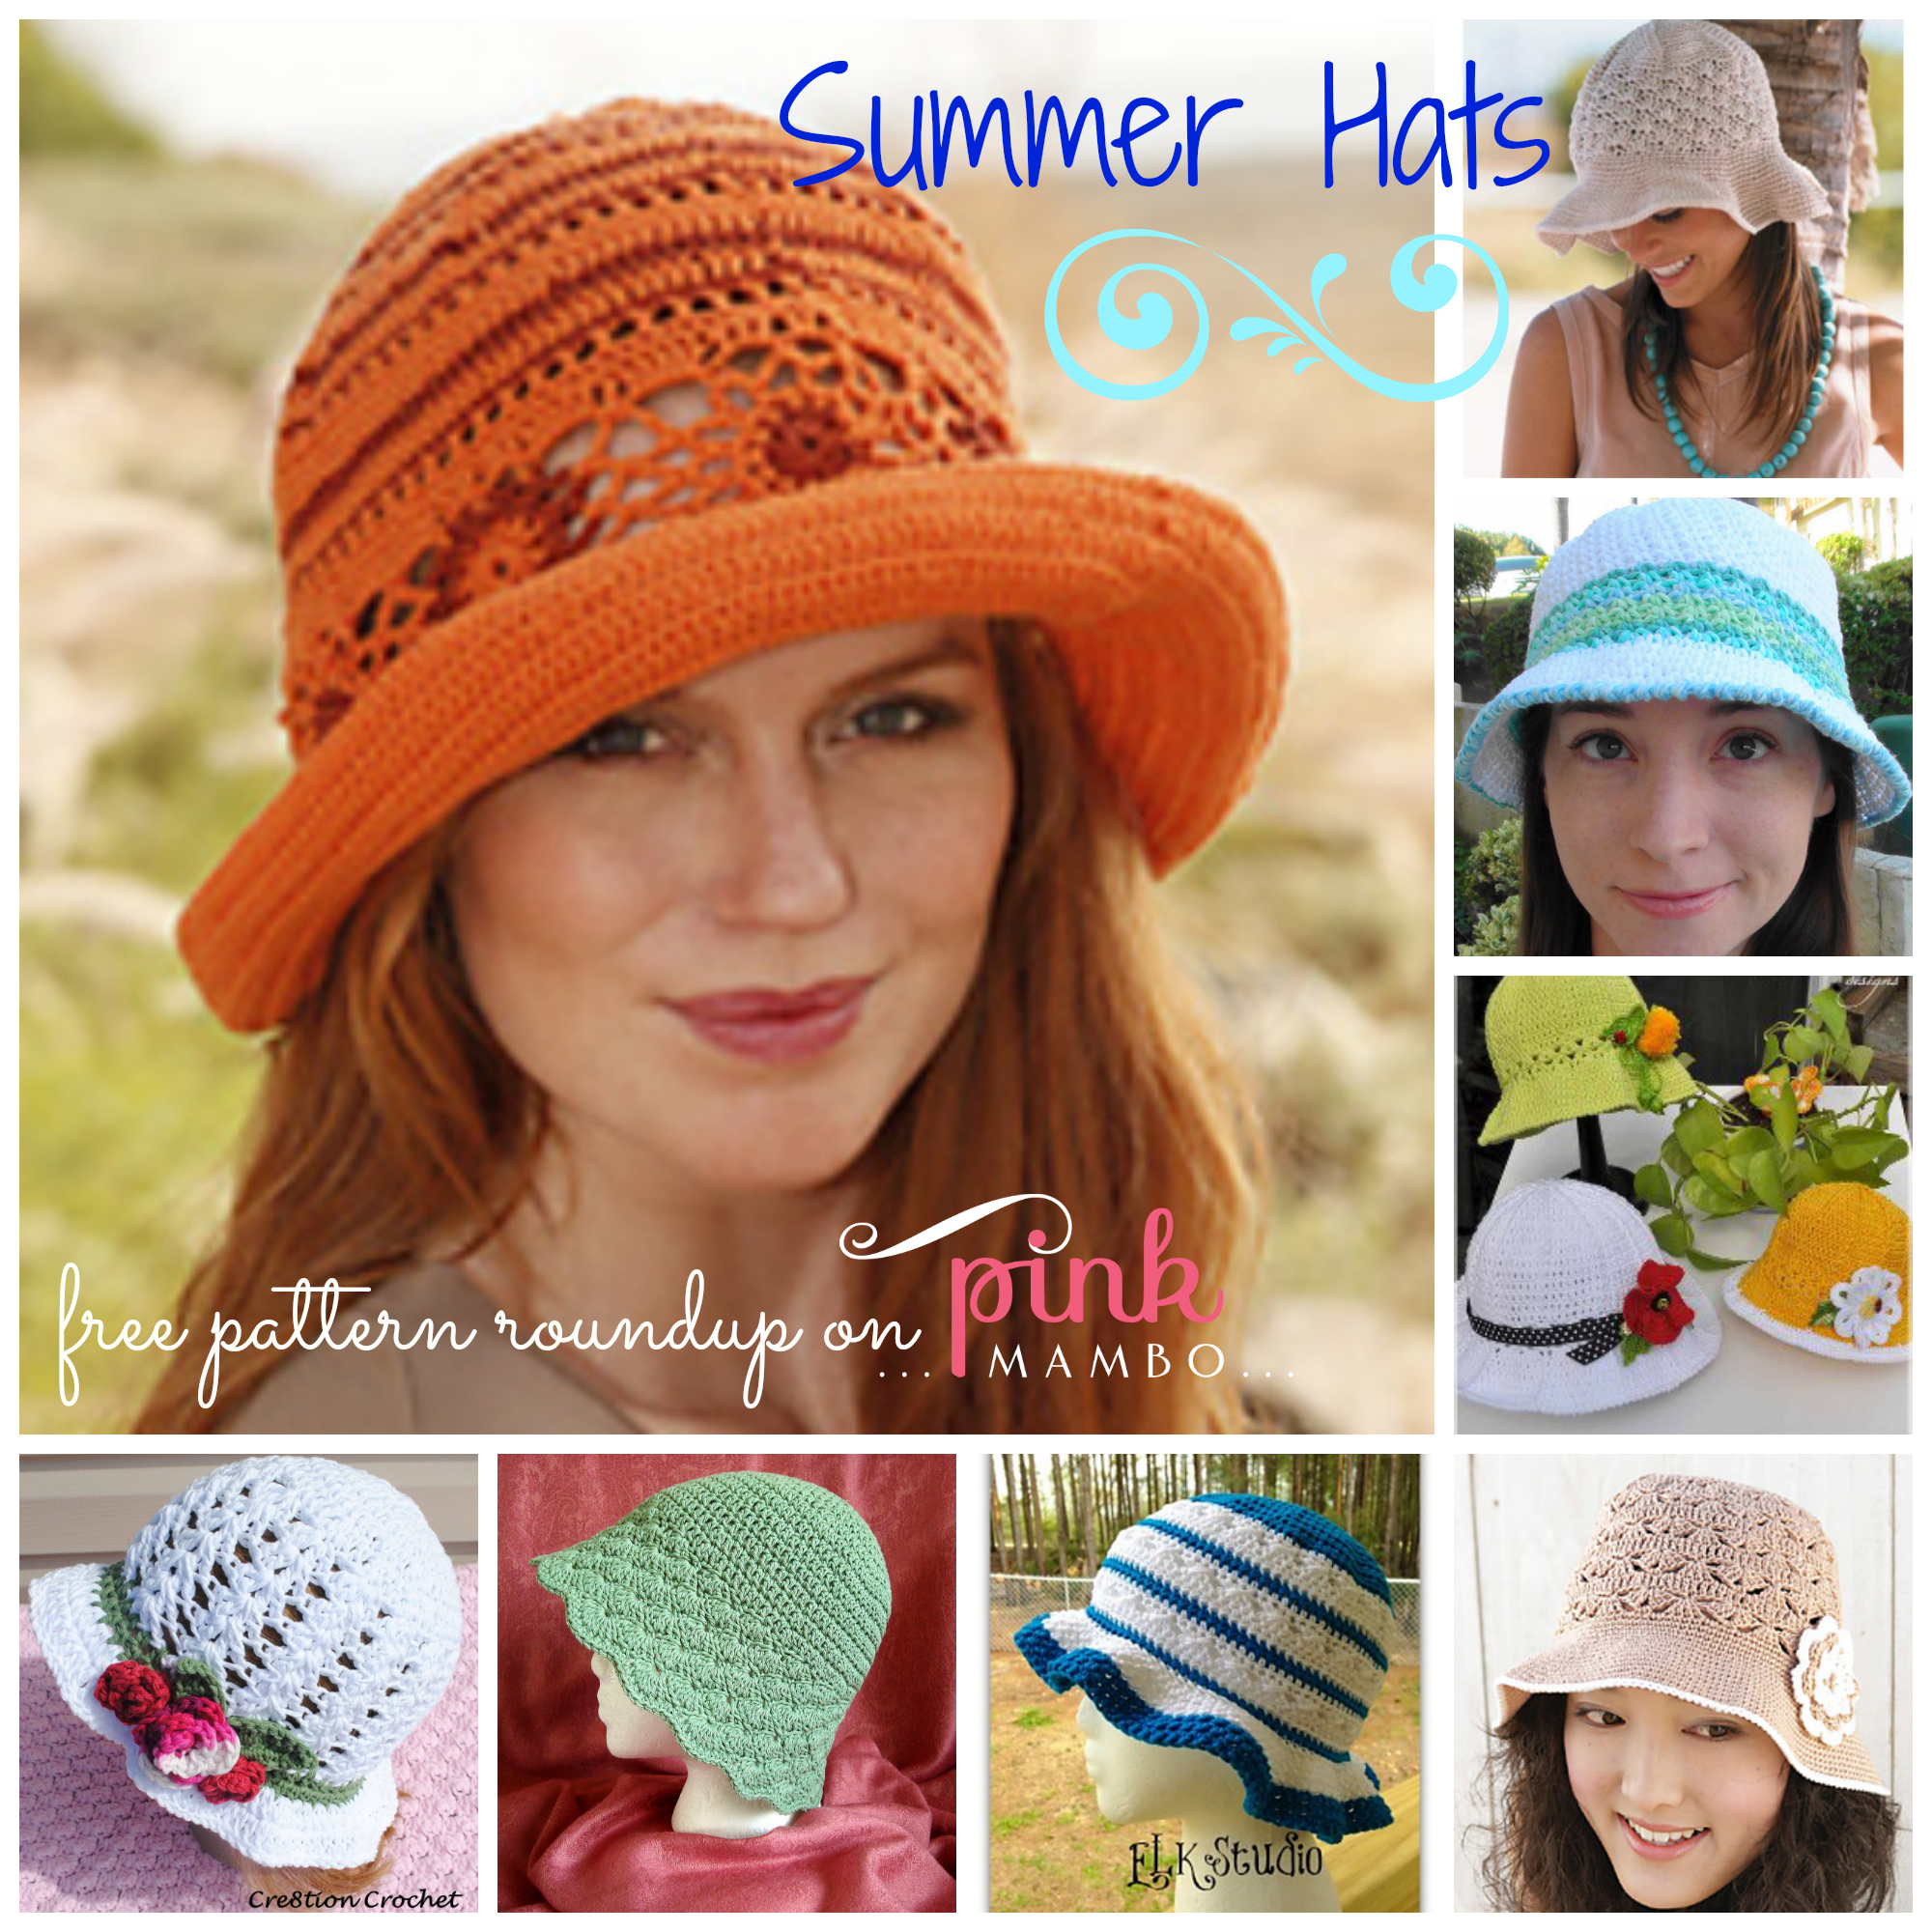 Free Crochet Summer Hat Patterns For Adults : Crochet Summer Hats - 8 Free Patterns! - Pink Mambo